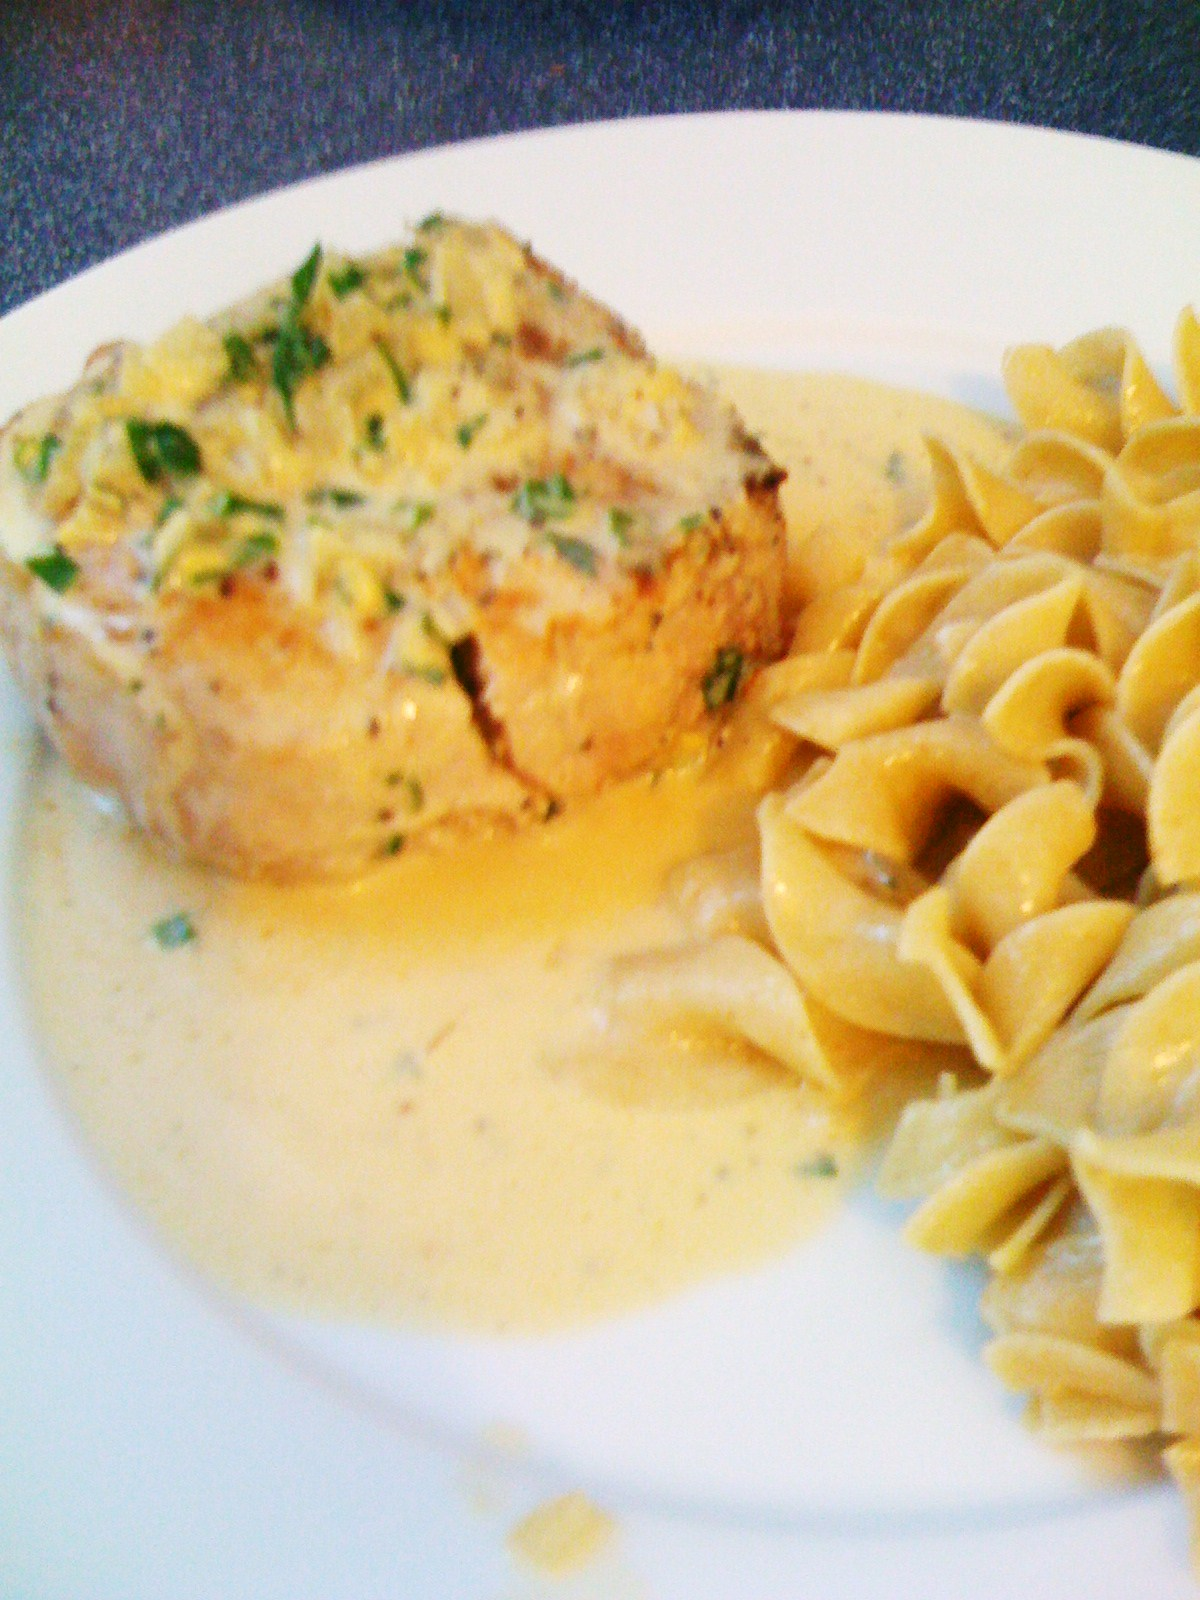 Kitchen Escapes: Pork Chops with Dijon Herb Sauce